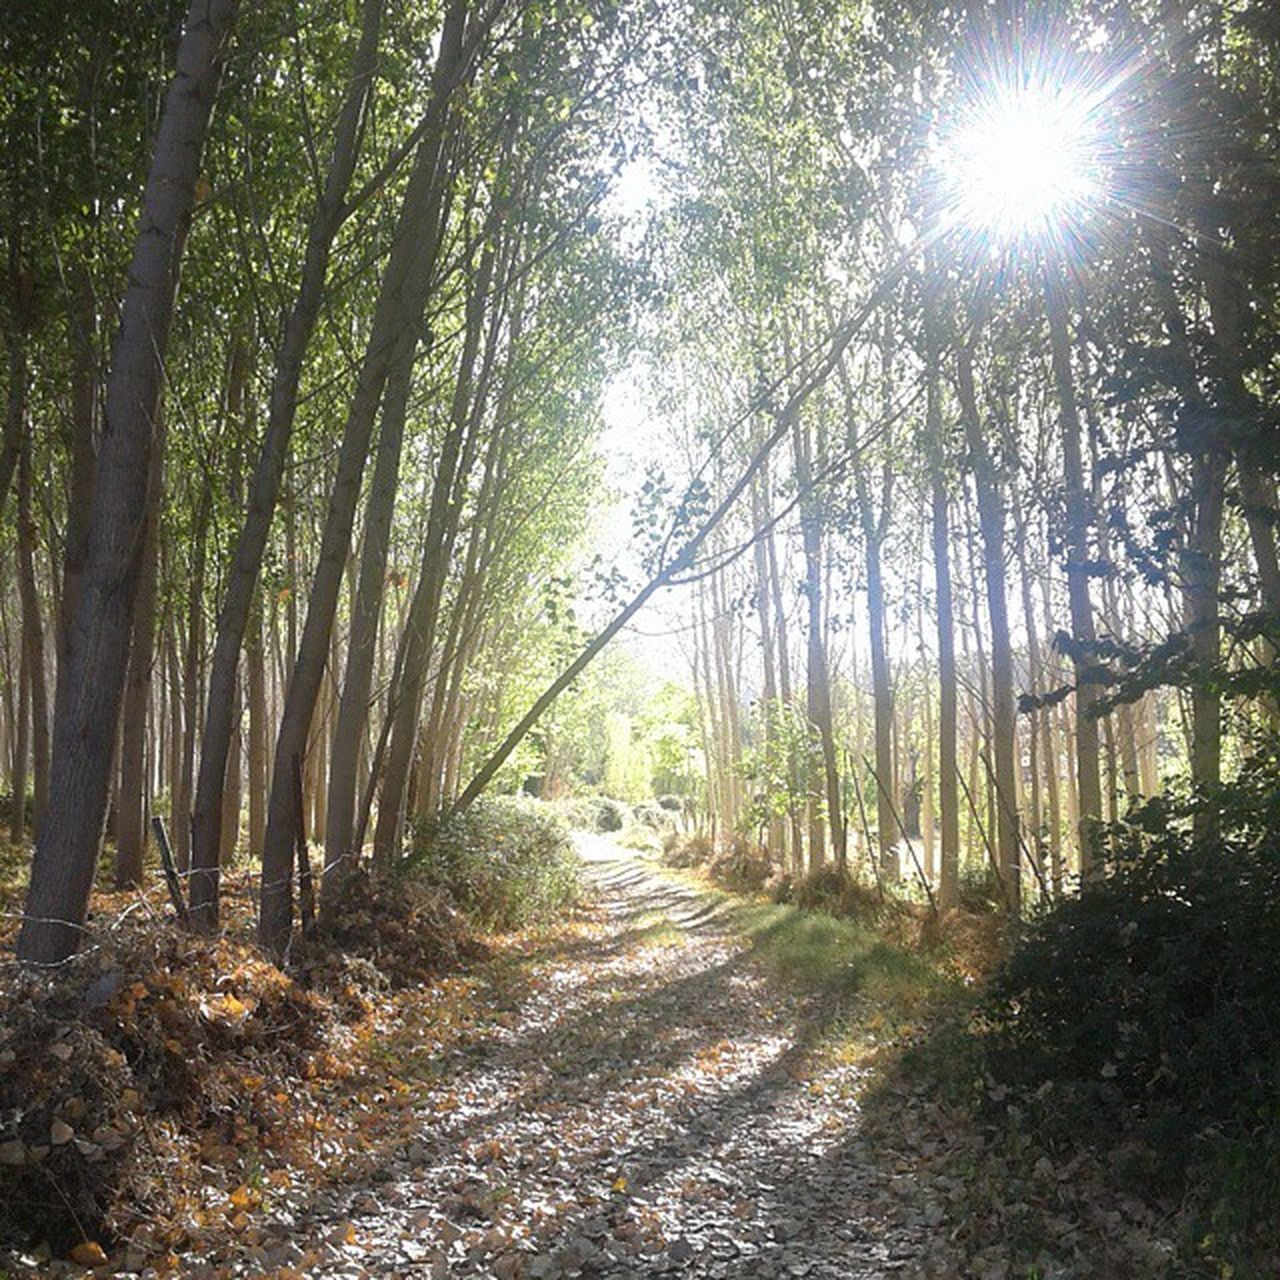 nature, forest, tranquility, tree, beauty in nature, tranquil scene, outdoors, growth, tree trunk, day, scenics, sunlight, no people, the way forward, bamboo - plant, landscape, bamboo grove